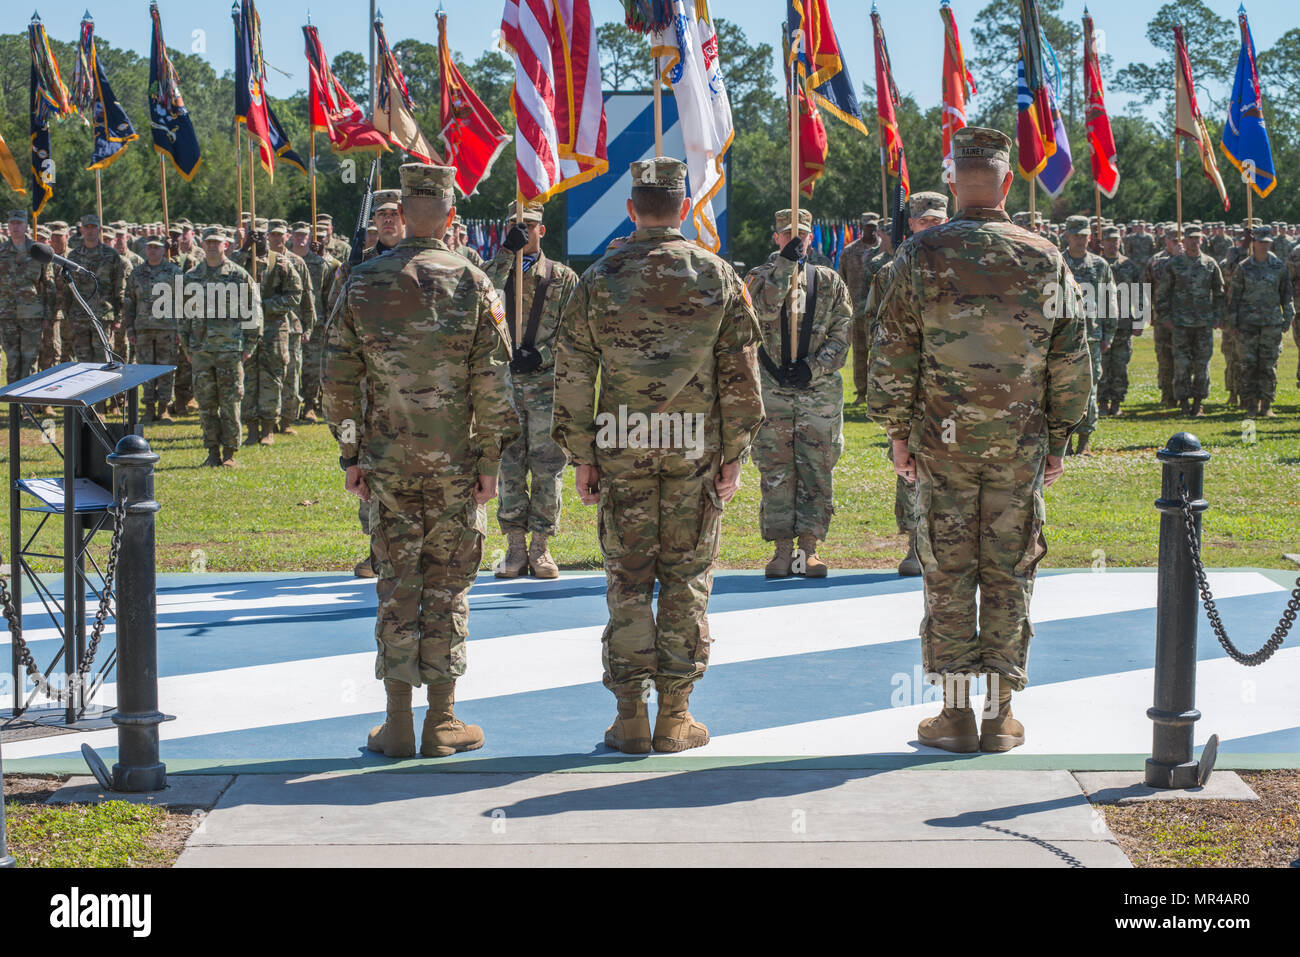 Maj. Gen. Leopoldo Quintas, left, incoming Commander of 3rd Infantry Division, Gen. Robert Abrams, center, Commander U.S. Forces Command, and Maj. Gen. James Rainey, right, outgoing Commanding General 3rd Infantry Division, stand in front of the assembled 3rd Infantry Division. The 3rd Infantry Division change of command ceremony was held on Cotrell Field at Fort Stewart, GA, May 8, 2017. (U.S. Army Photo by Lt. Col. Brian J. Fickel) - Stock Image